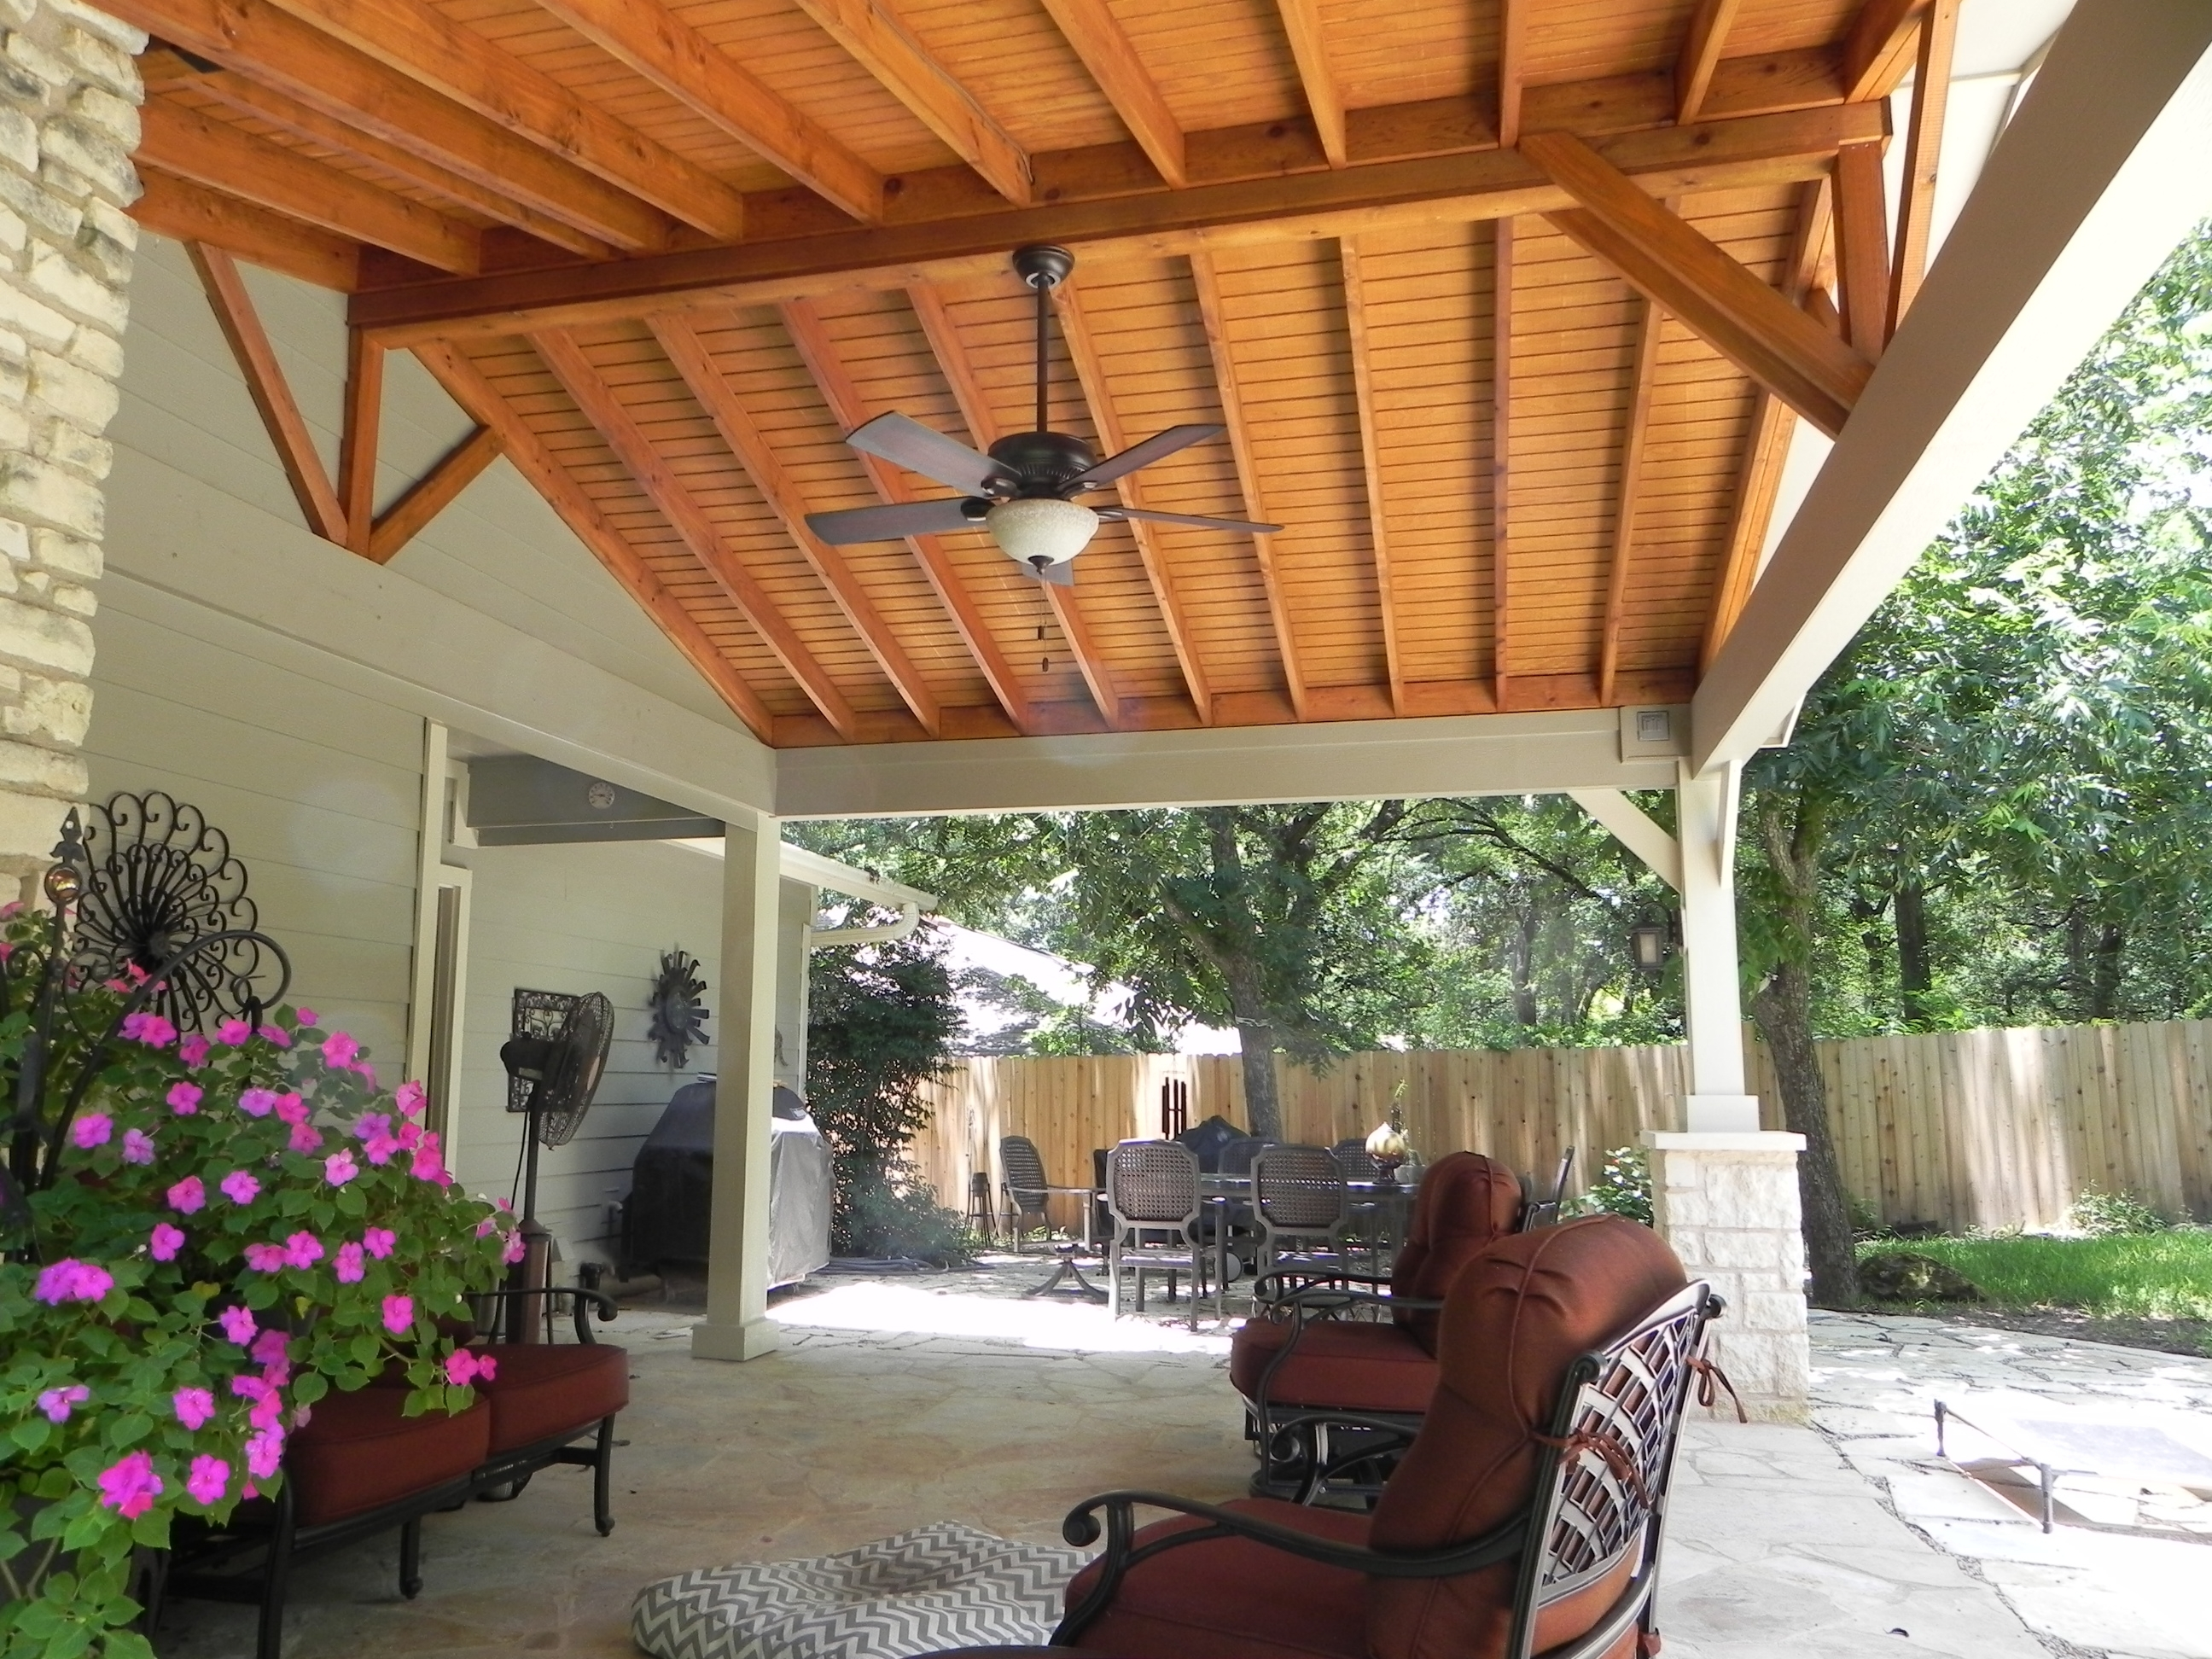 Austin Custom Covered Patios (View 20 of 20)